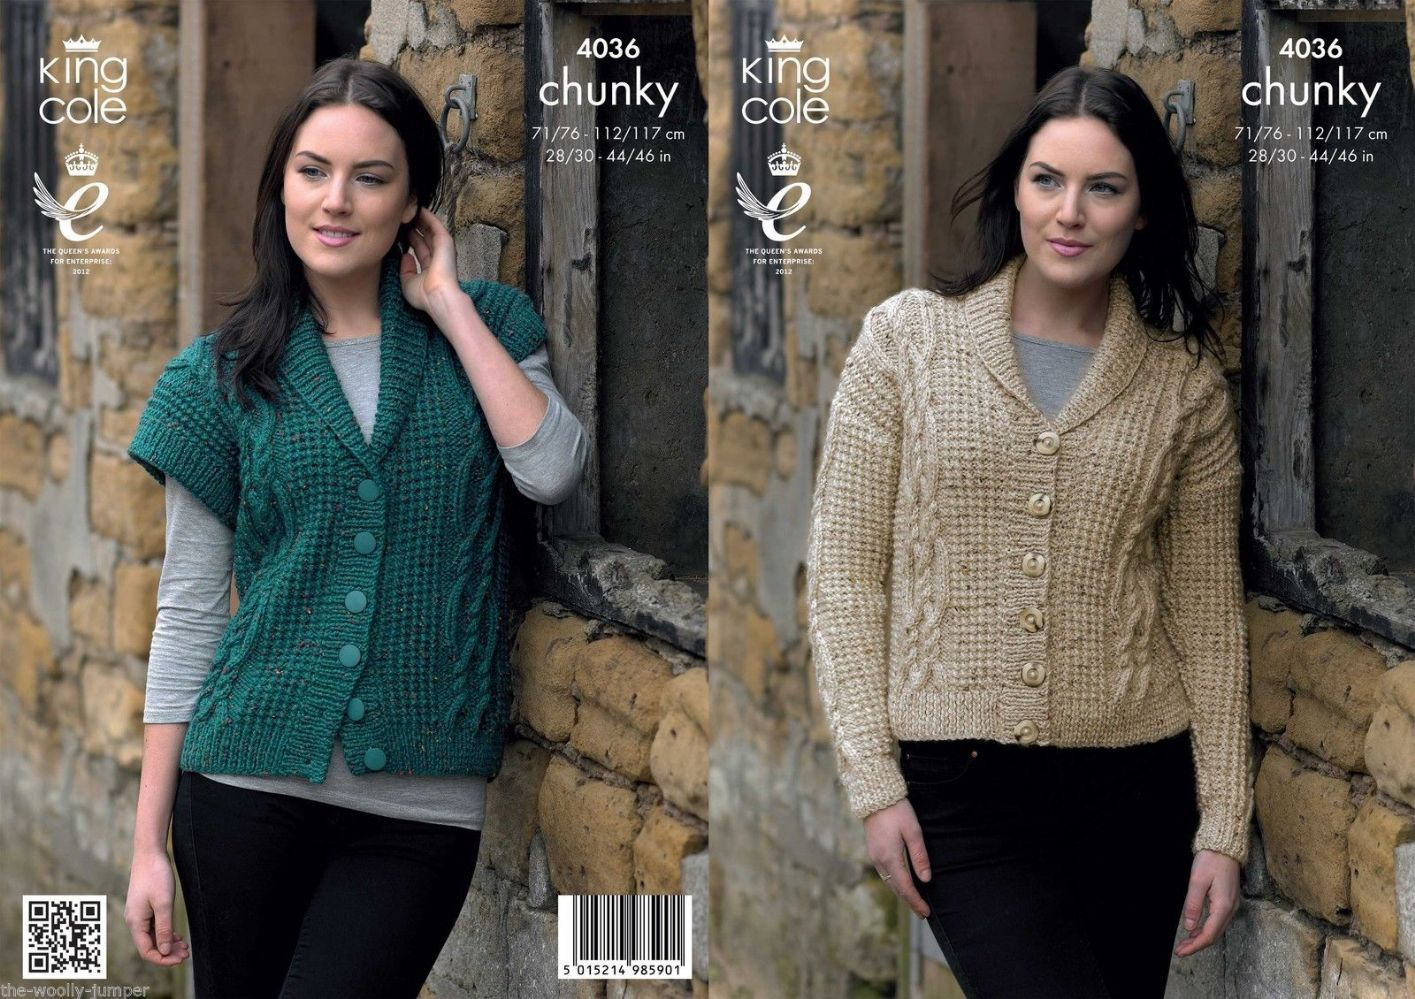 Knitted Jacket Patterns 4036 King Cole Chunky Tweed Cardigan Jacket Waistcoat Knitting Pattern To Chest 28 To 46